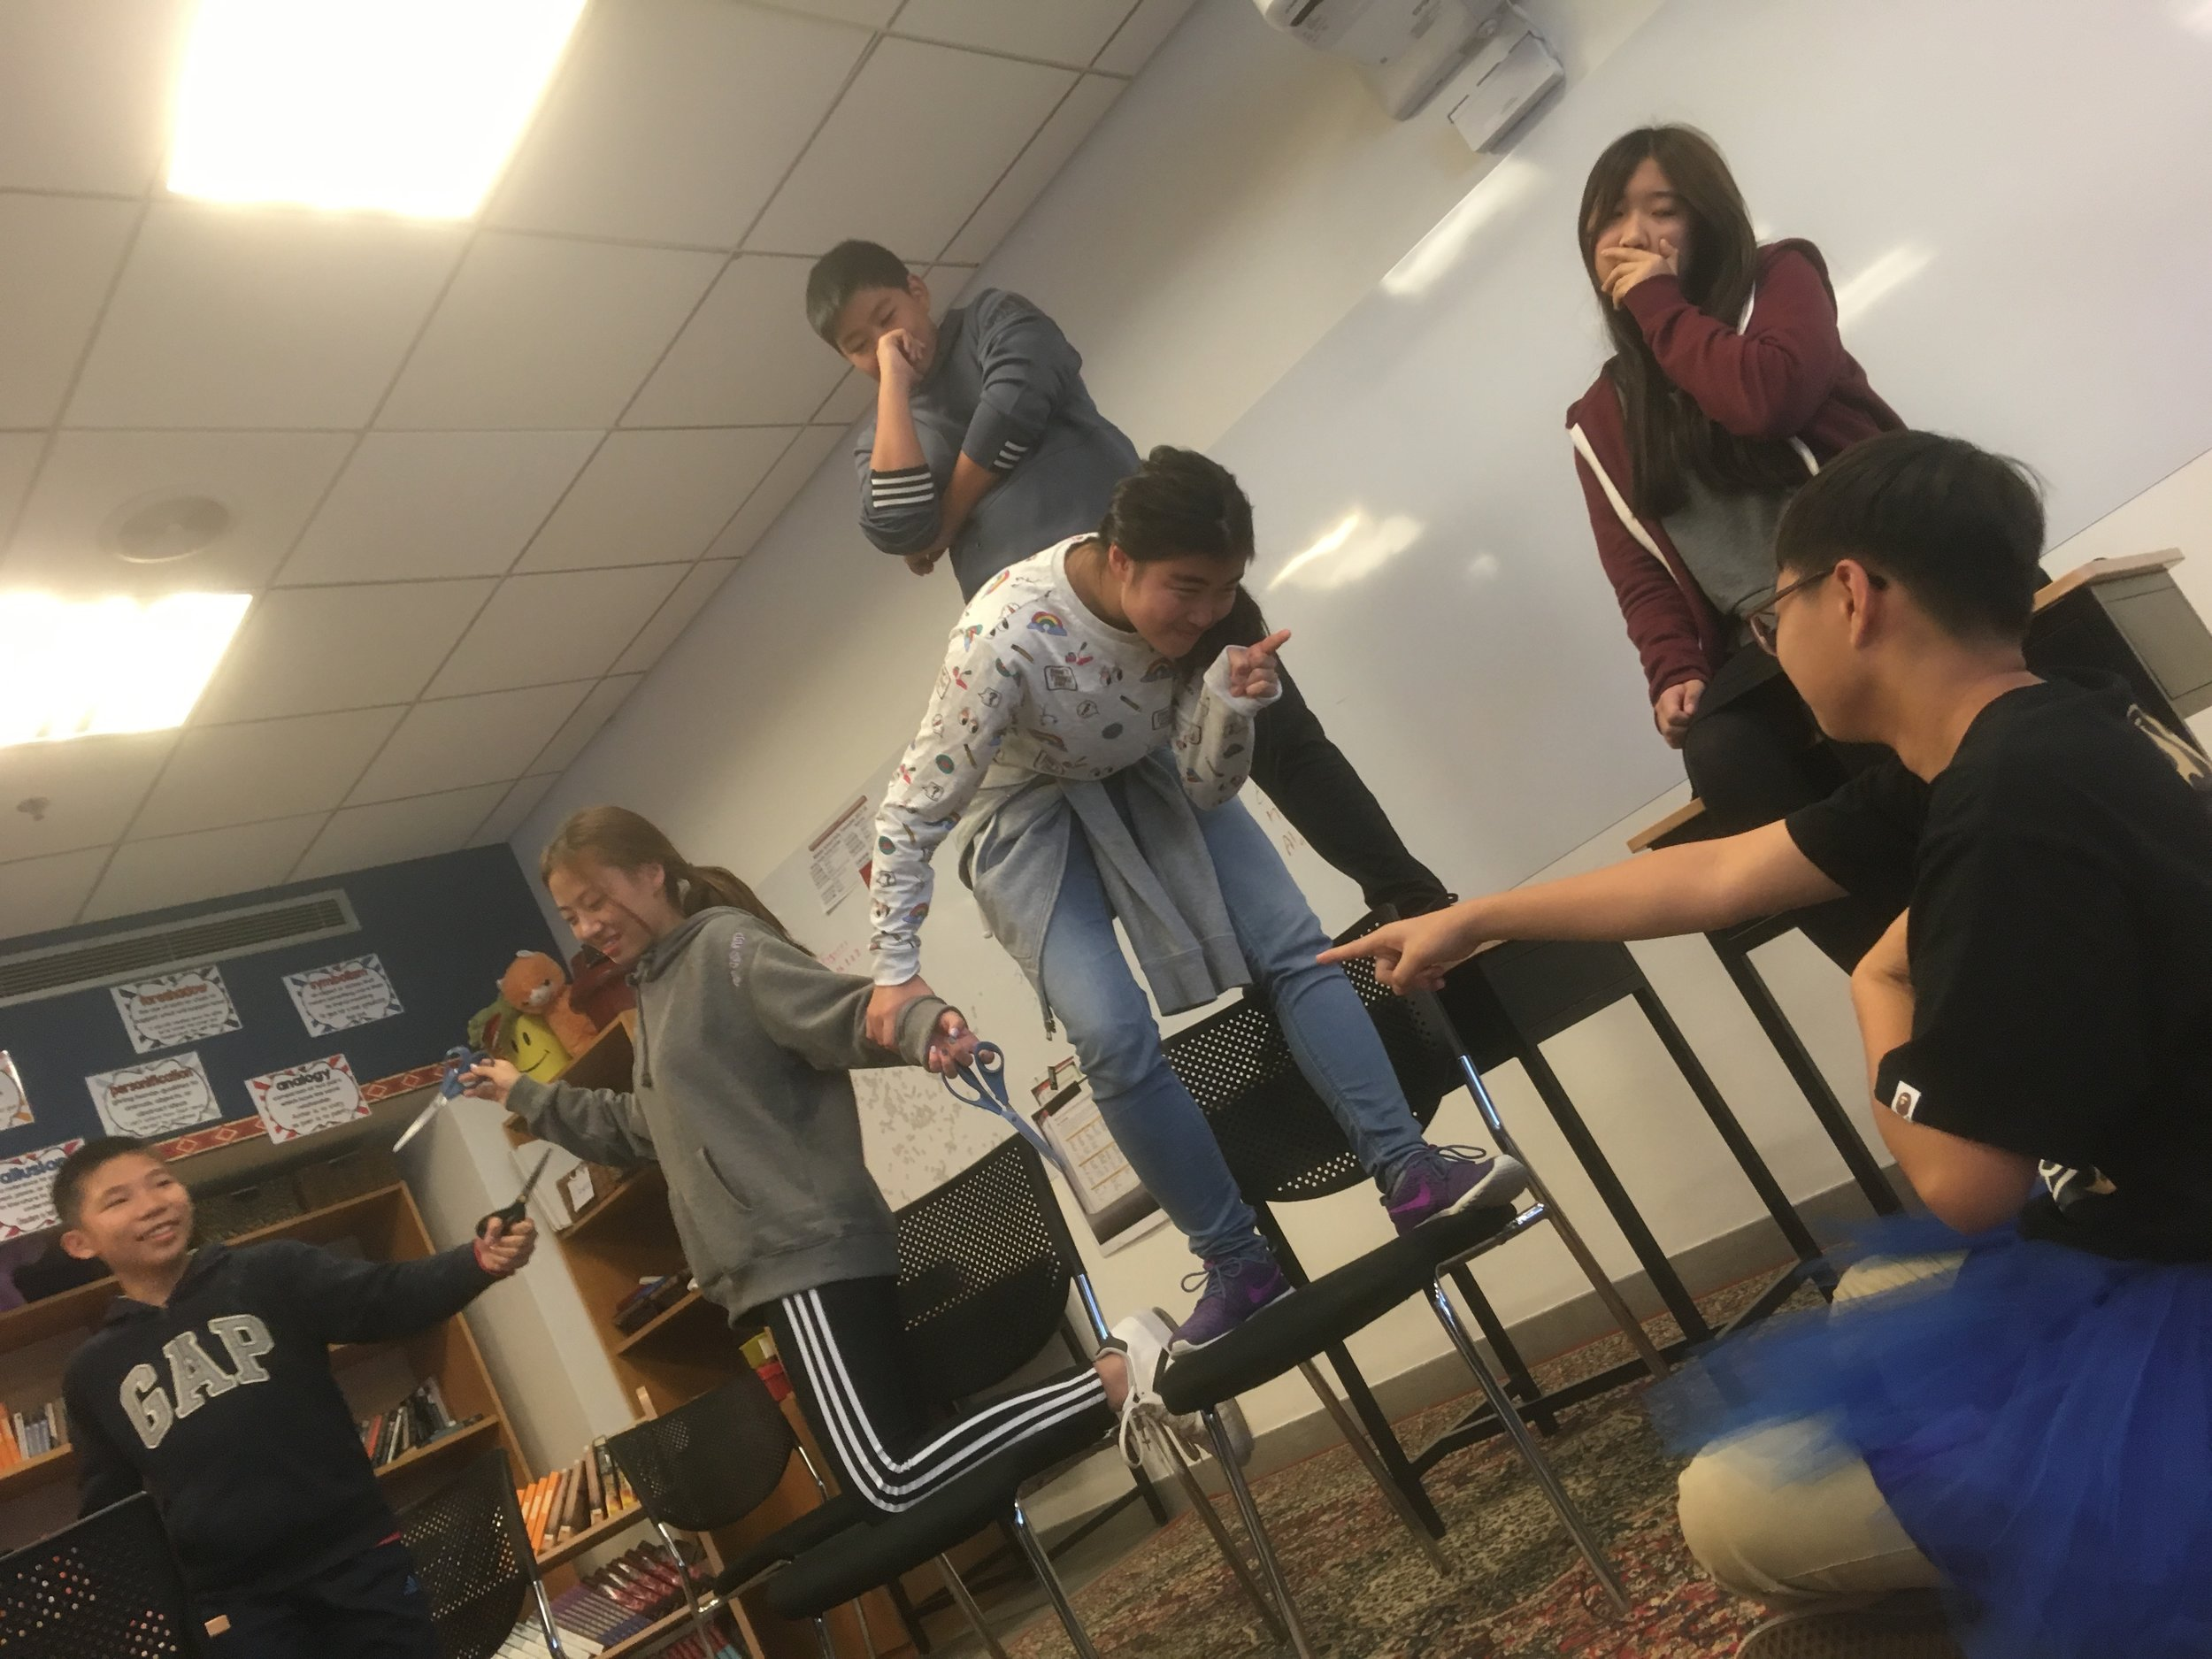 As a part of mapping the emotional wellbeing of certain key characters, students are asked to tableaux scenes to better understand dynamics of character differences as well as understanding directing elements such as non-verbal cues, director's notes, camera angles, sets, and framing